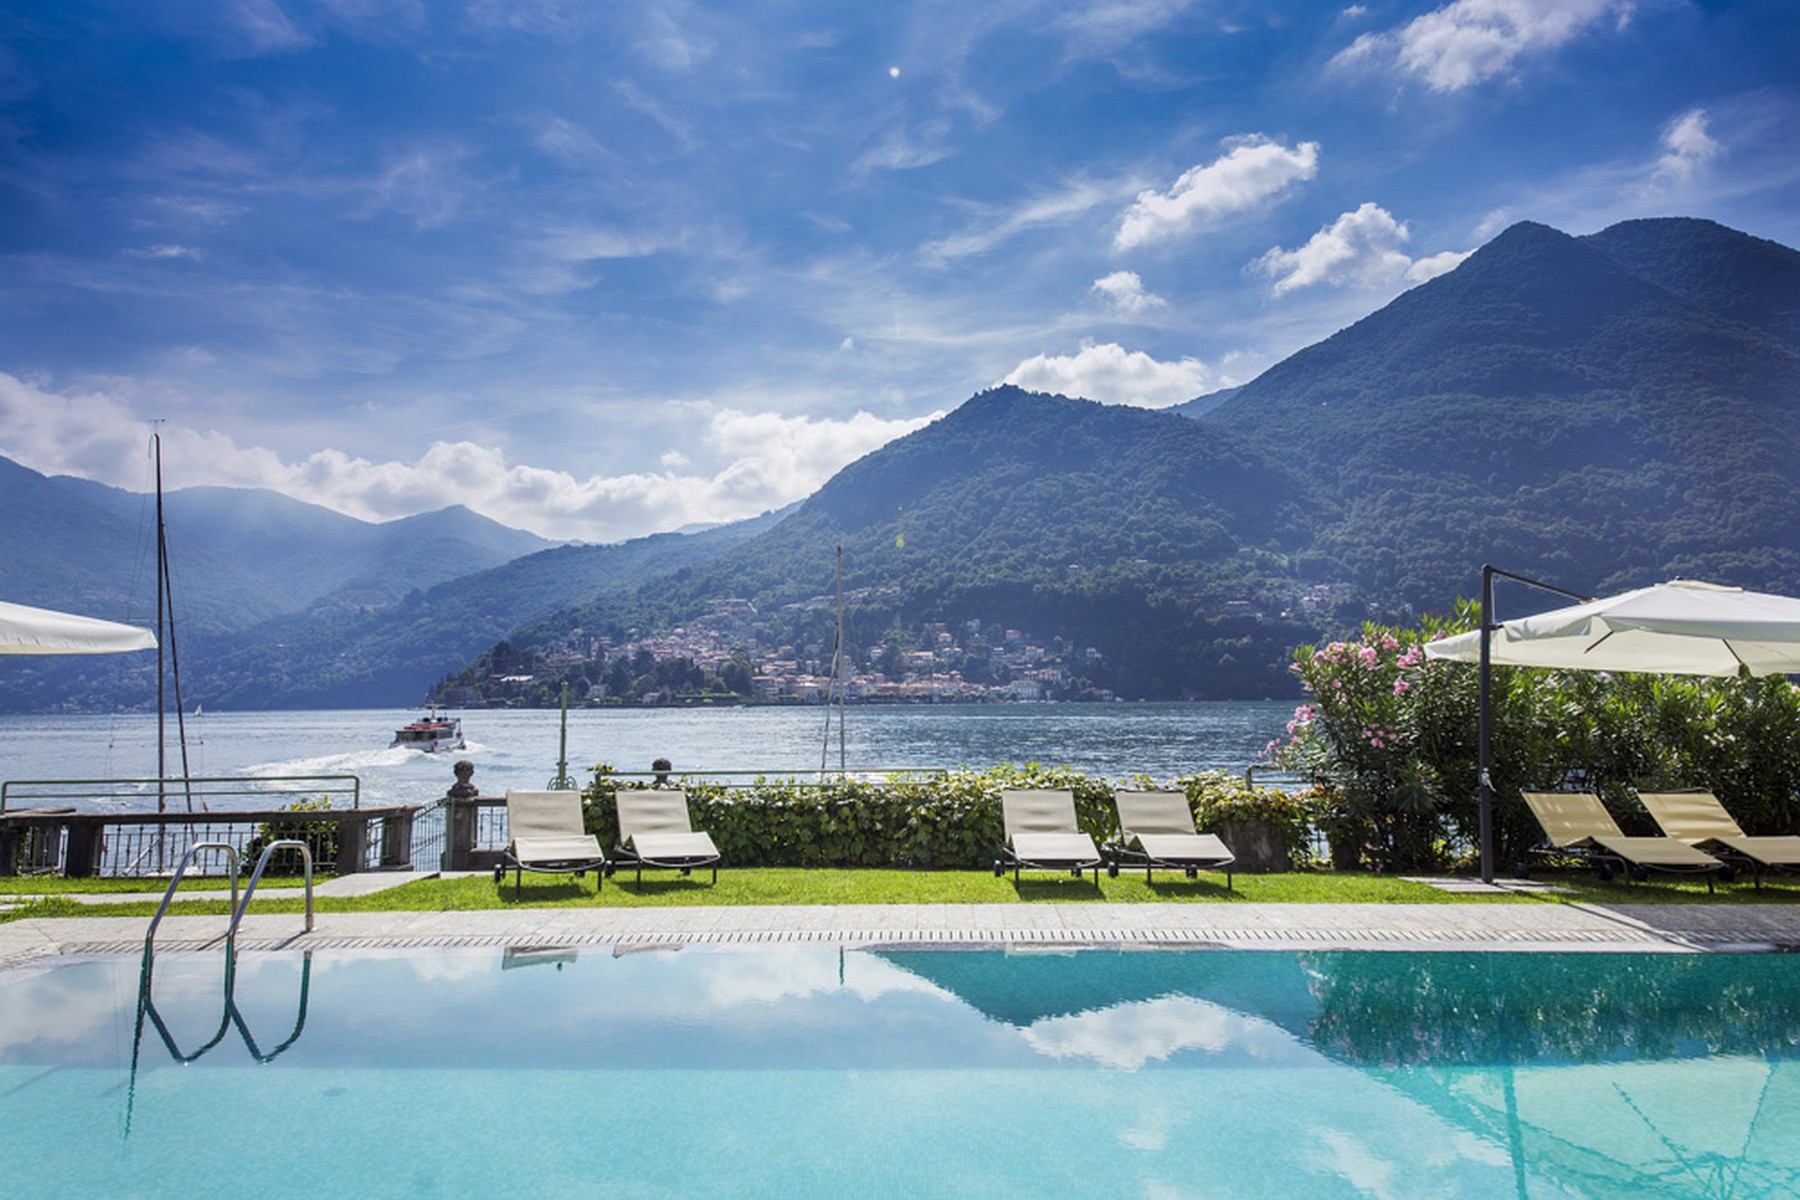 Apartment for Sale at A celebrity-owned lakefront Penthouse within a prestigious villa in Moltrasio via Regina Moltrasio, Como 22010 Italy